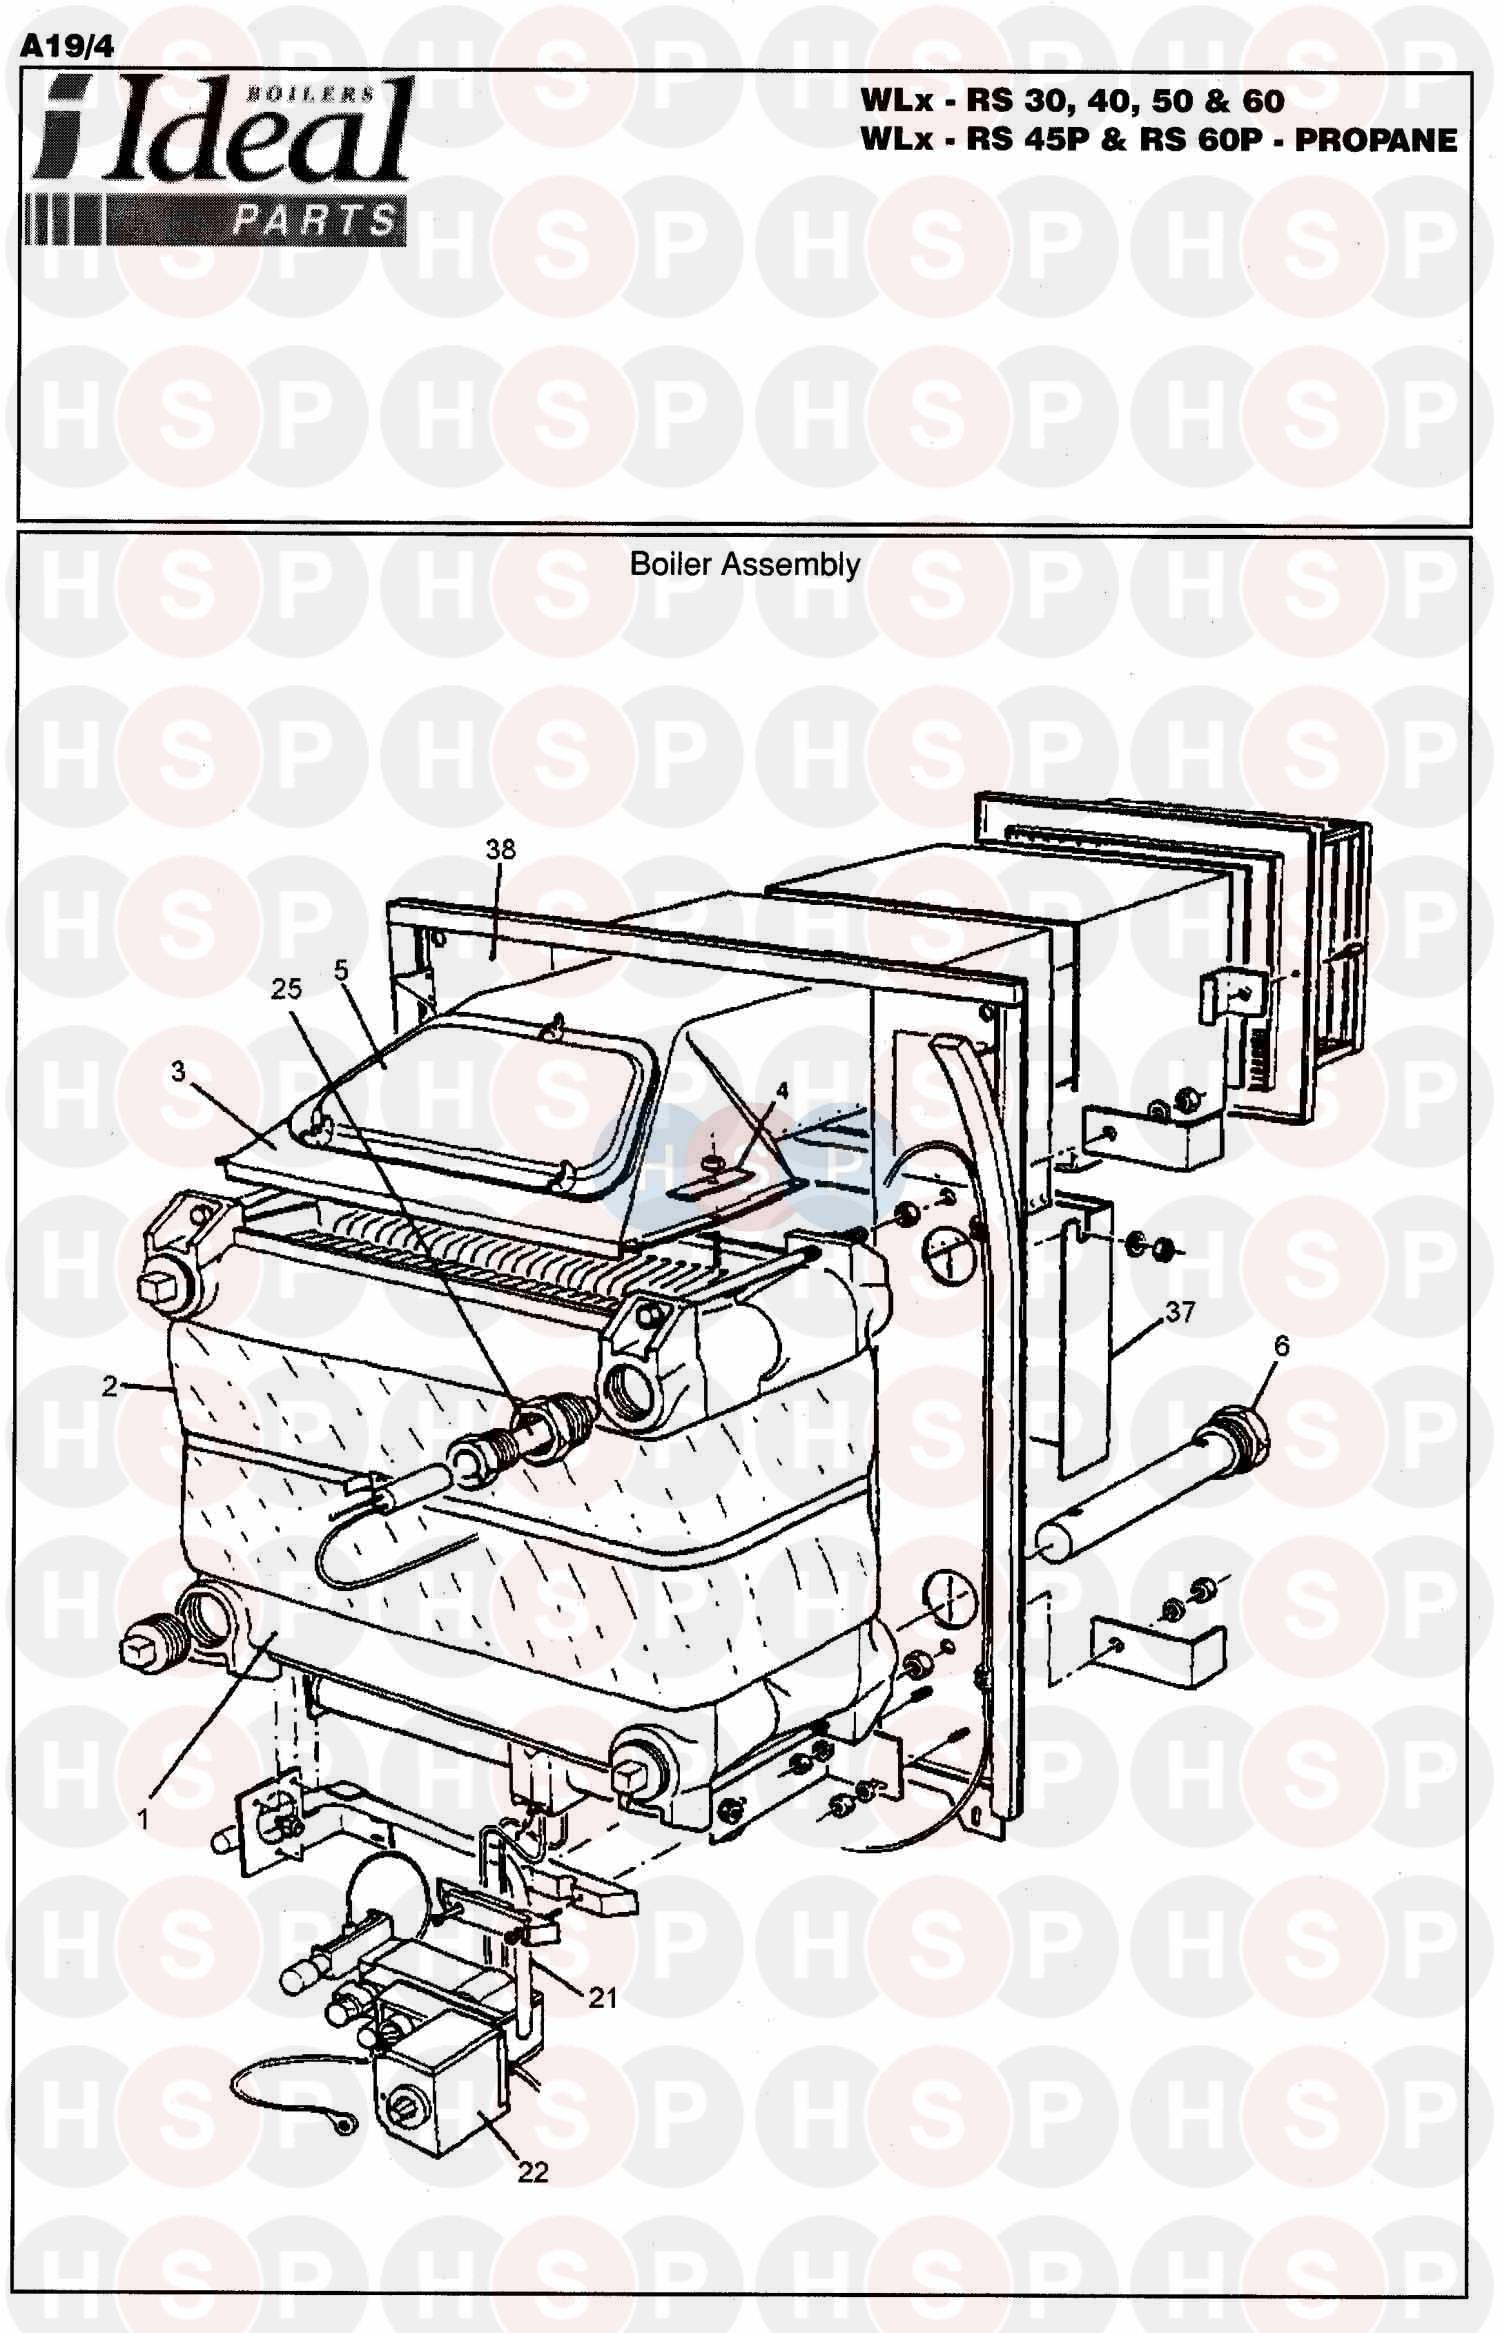 ideal concord wlx rs 50  boiler assembly 1  diagram